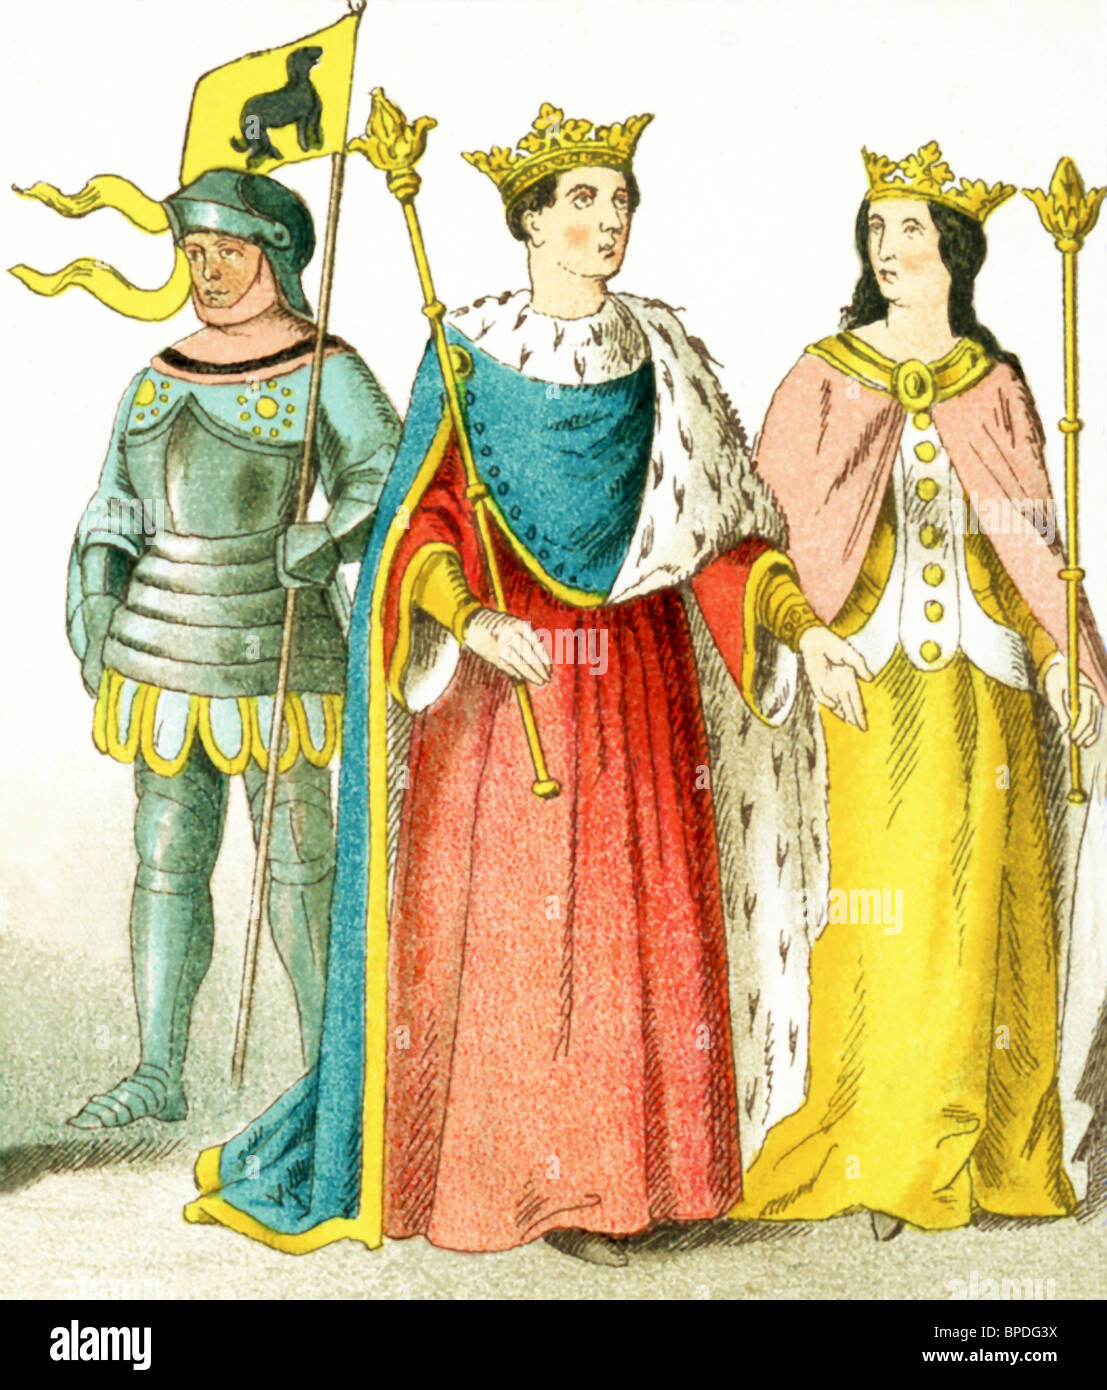 English people between A.D. 1400 and 1450: a knight, Henry VI (1445), and Margaret (his consort). - Stock Image